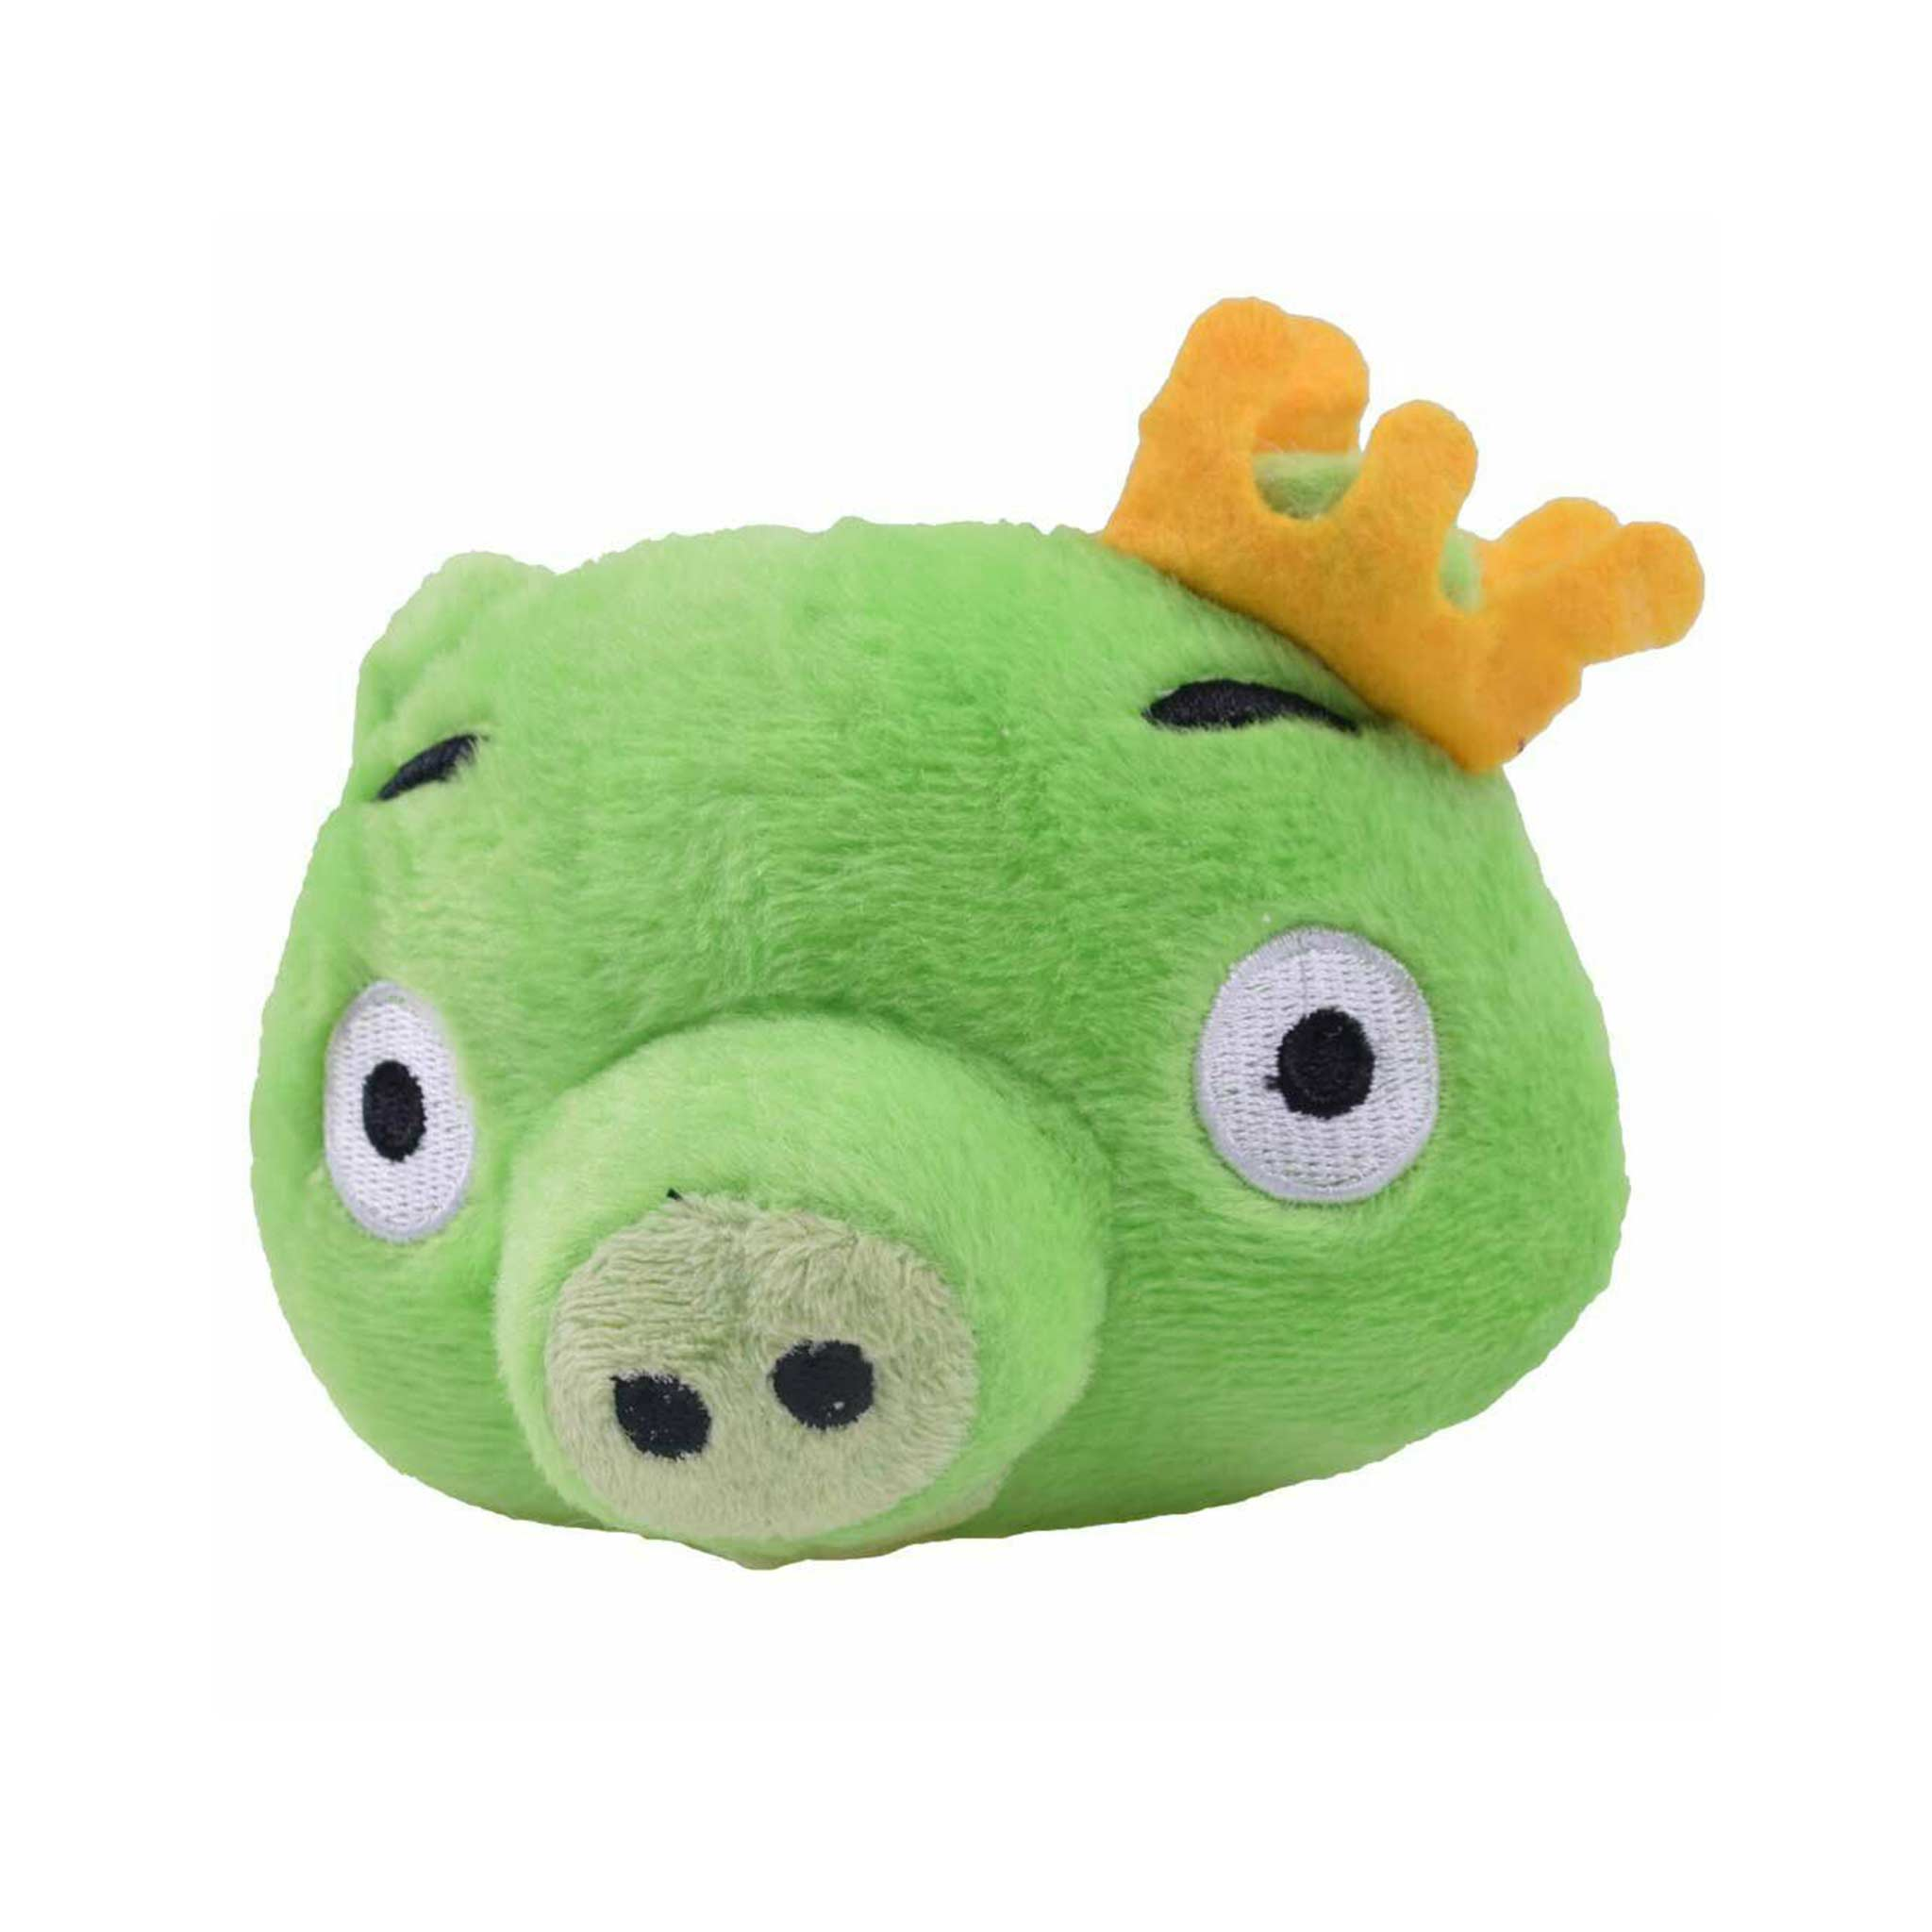 GogiPet_Angry_Birds_-_Bad_Pigs_Plueschtier.jpg|lovdog.at